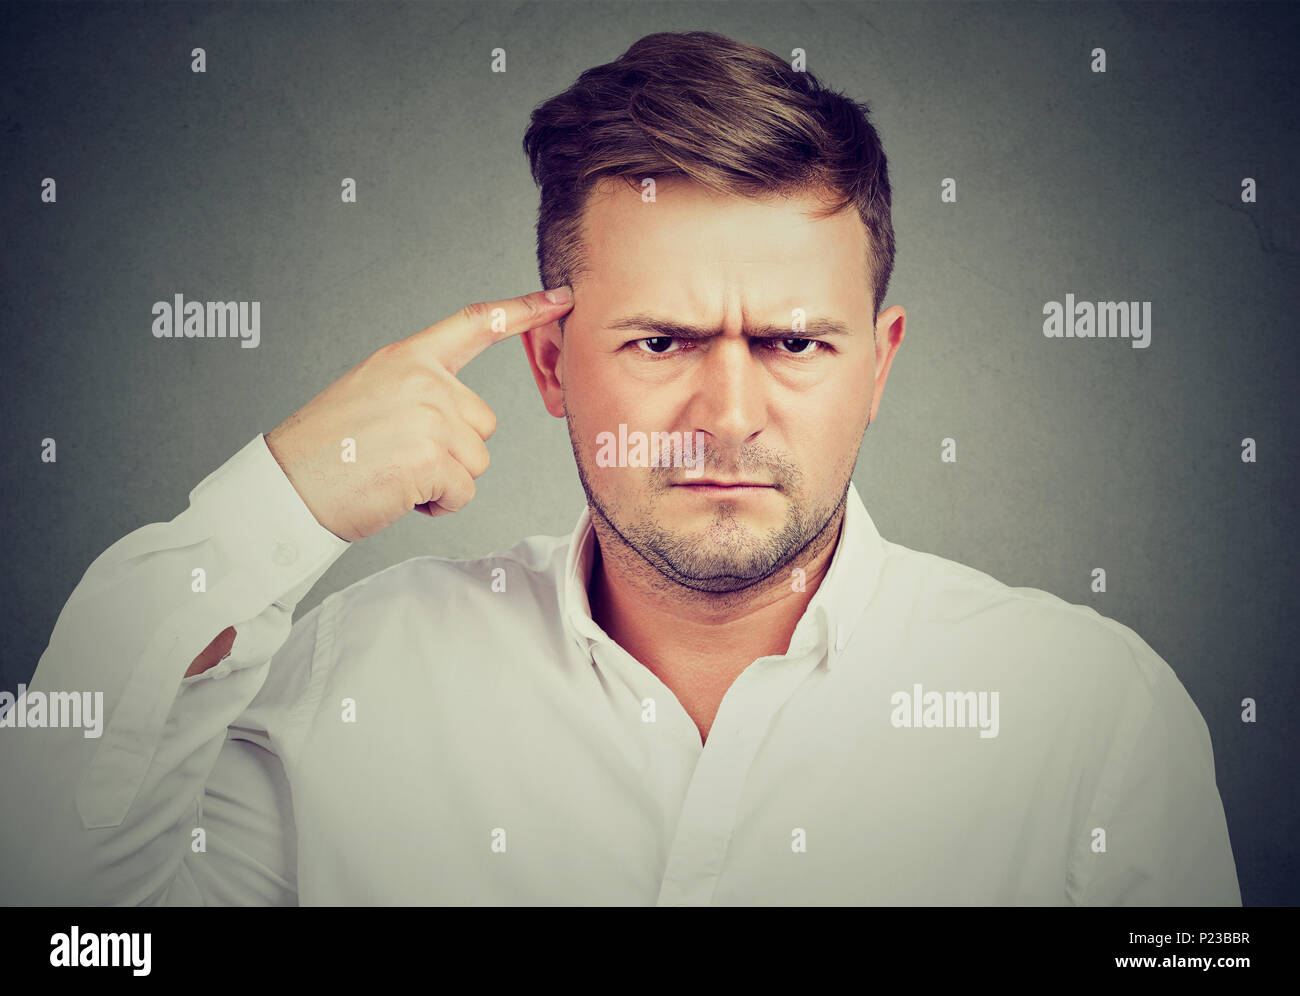 Serious upset man pointing at temple with forefinger and looking at camera anxiously. - Stock Image